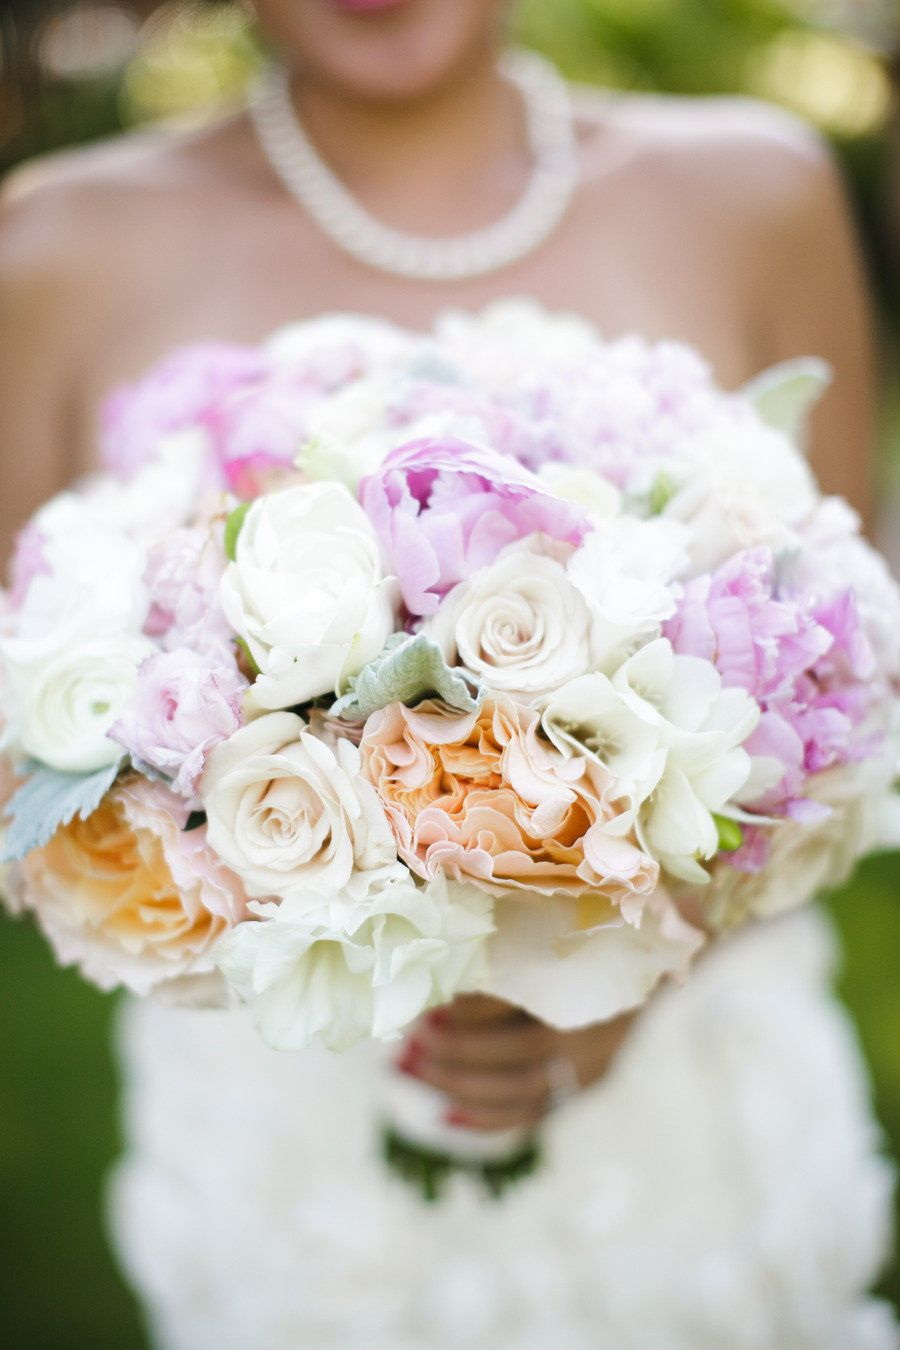 #Bouquet   See the wedding on SMP - http://www.stylemepretty.com/2013/03/27/maui-wedding-from-weddings-by-sasha/ Weddings by Sasha